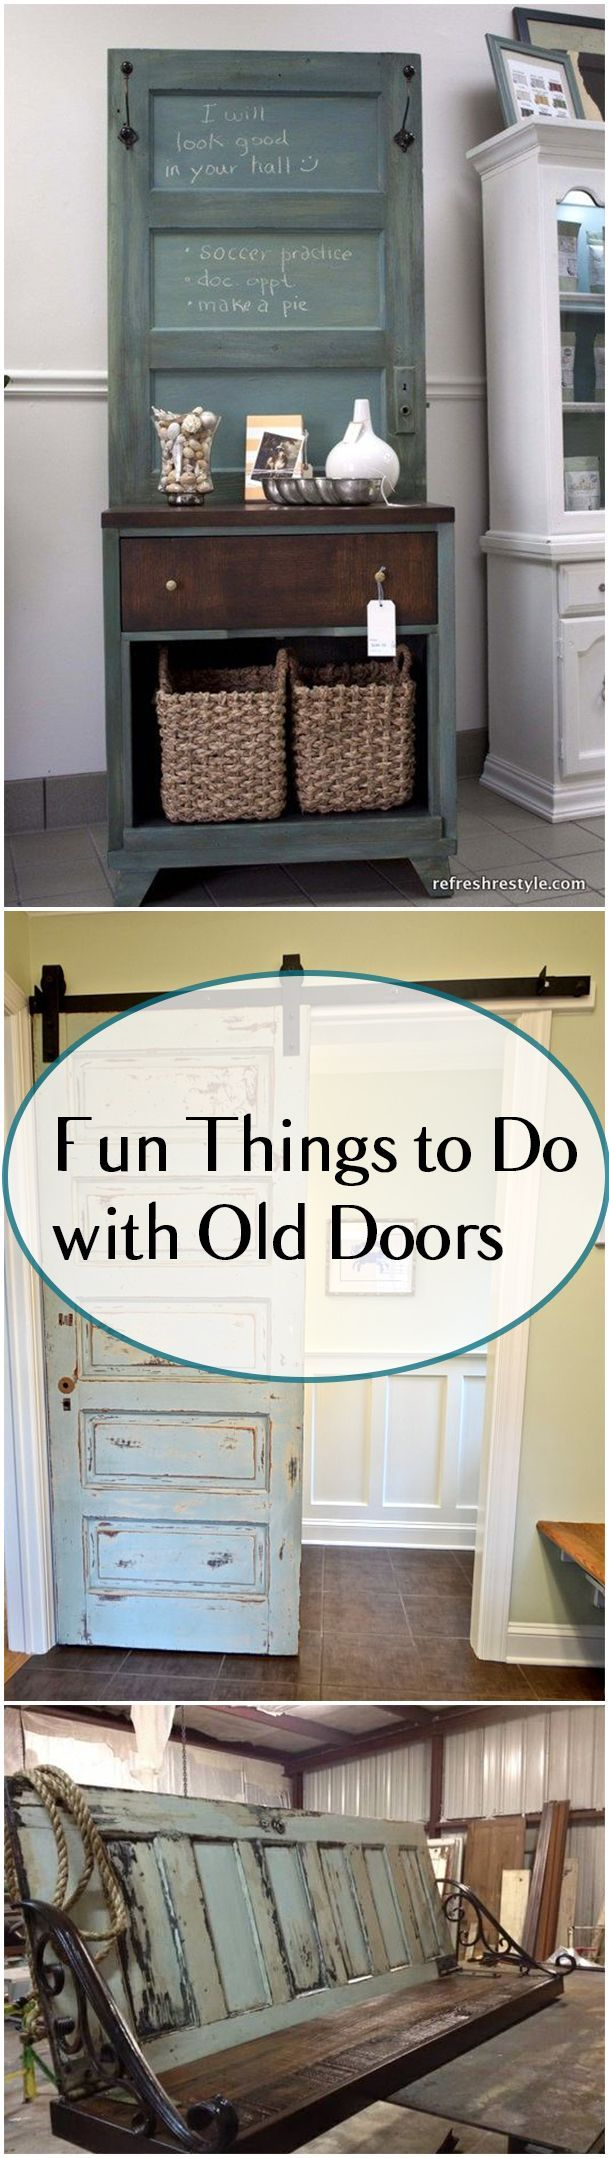 Fun Things to do with Old Doors